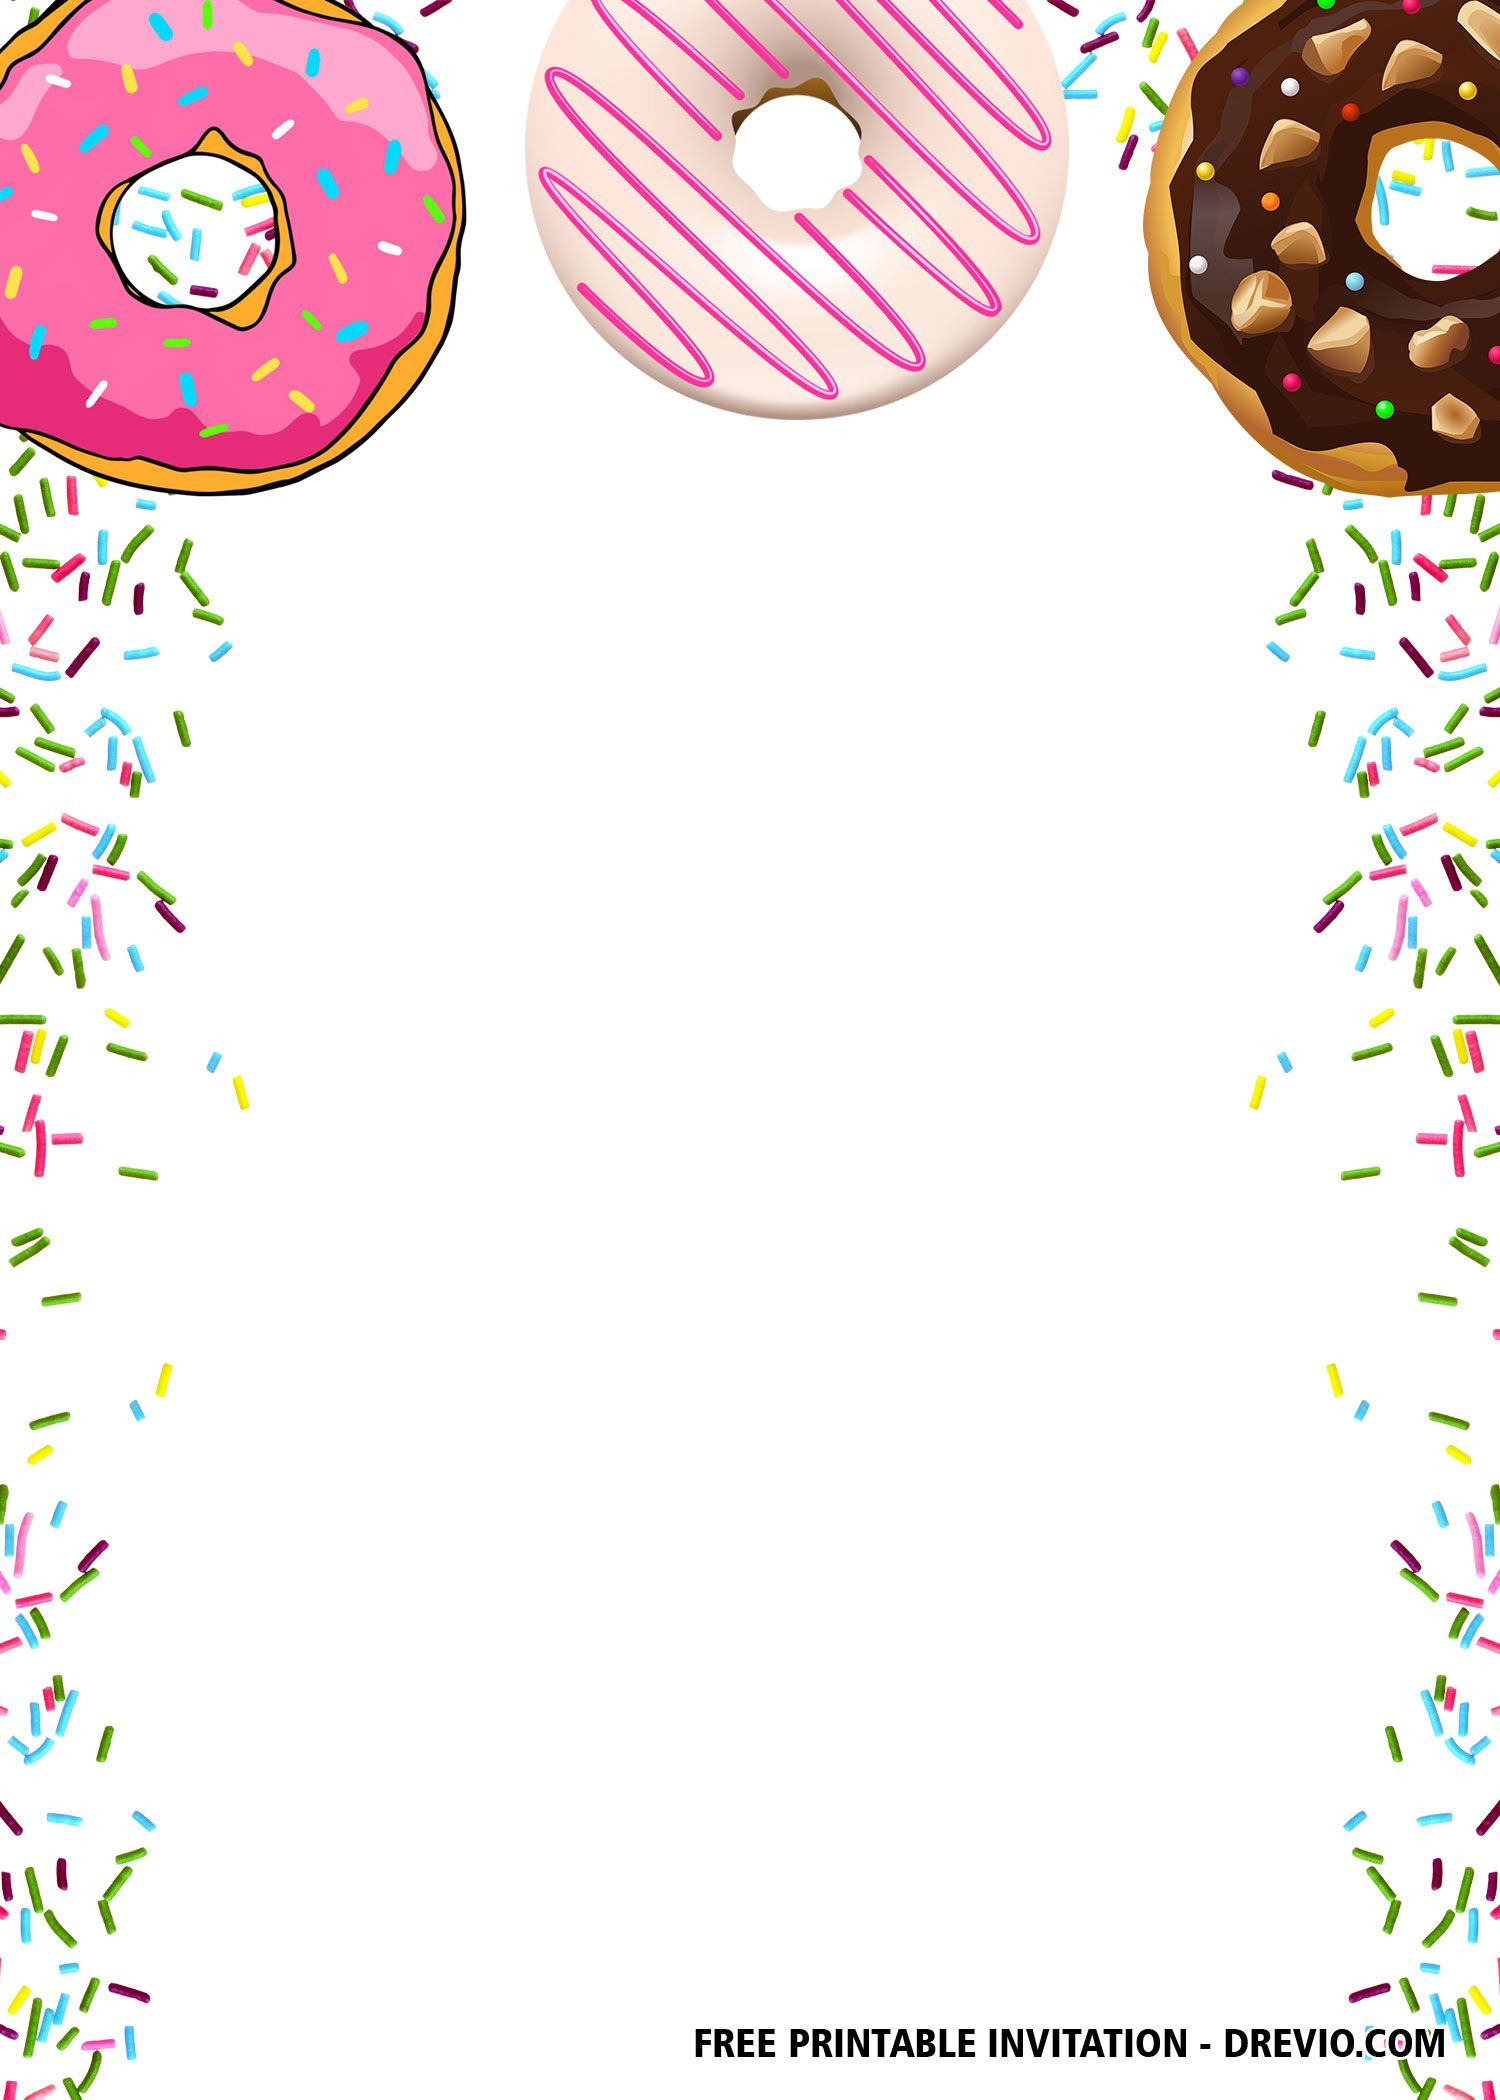 FREE Editable Donuts Party Invitation Templates  DREVIO  Donut